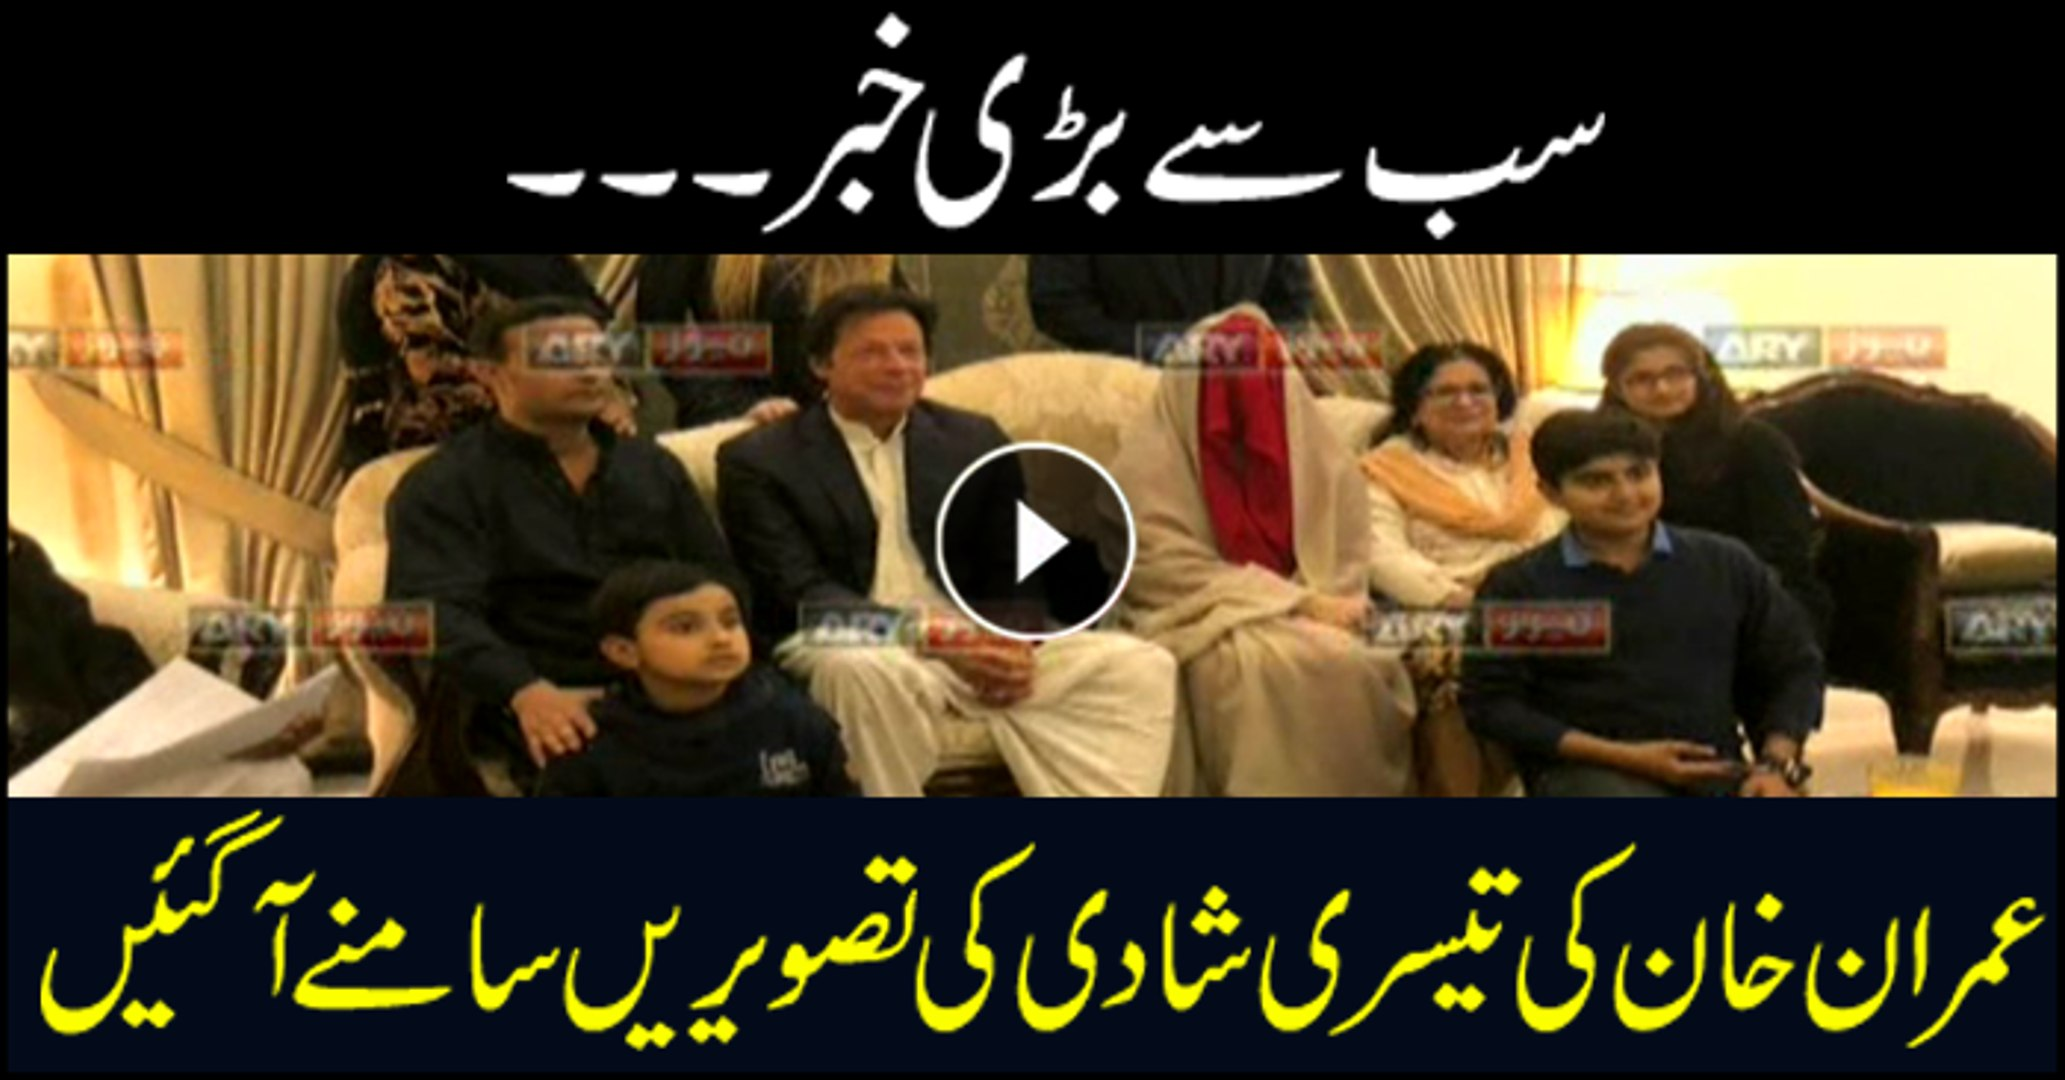 Imran Khan ties the knot again for third time